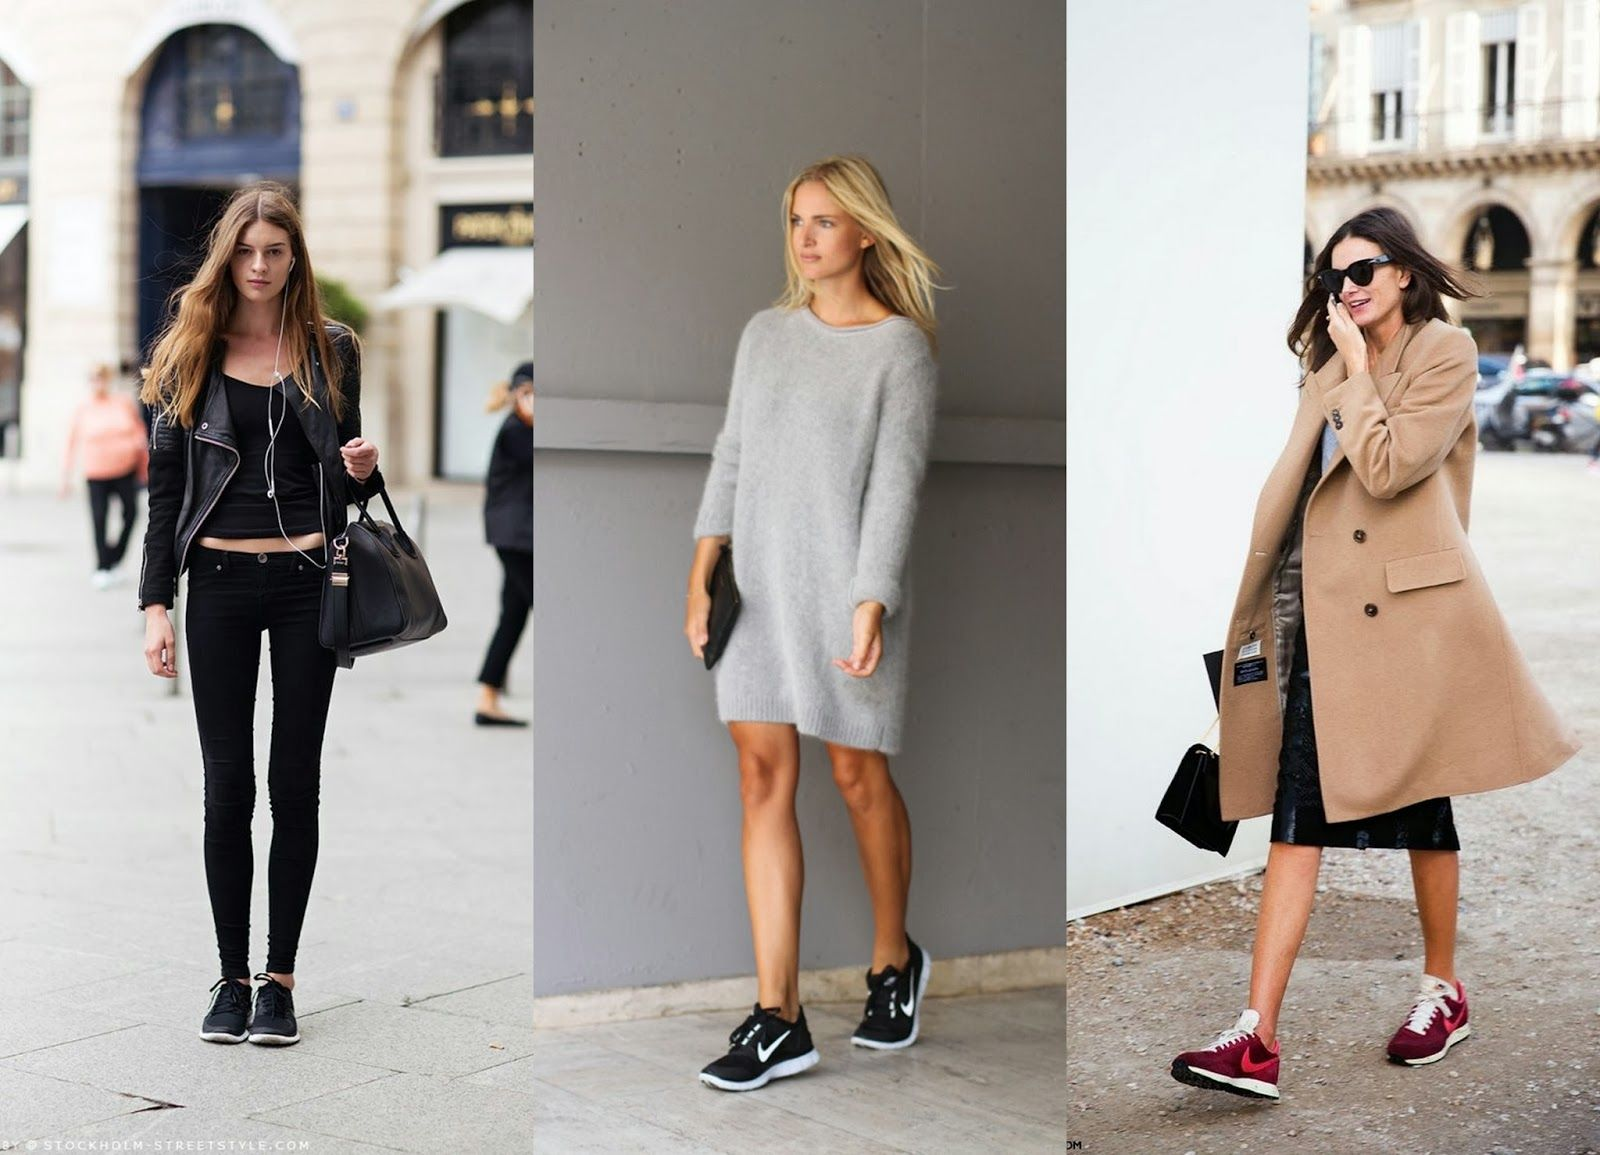 nike trainers street style | Stockholm